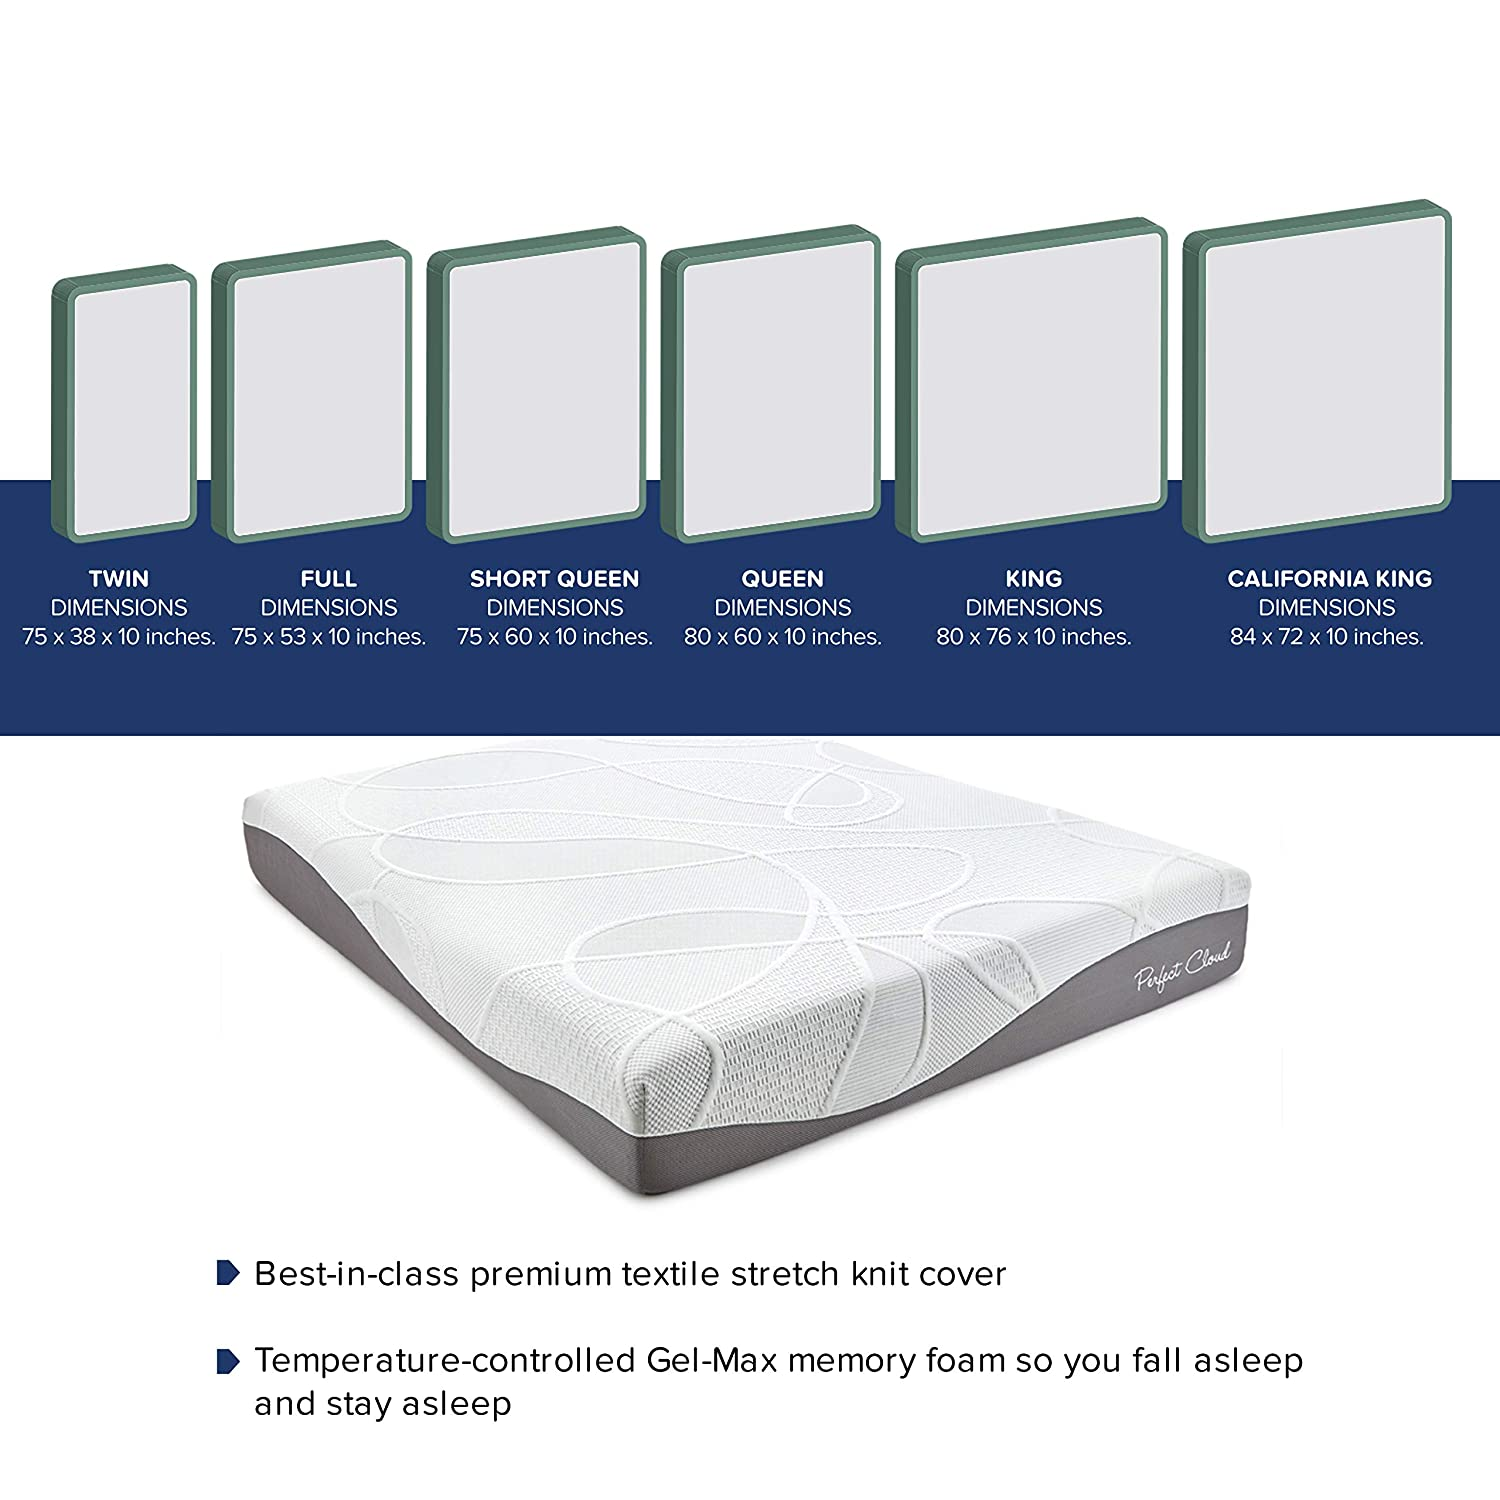 9deba85f26b21e Amazon.com  UltraPlush Gel-Max Memory Foam Mattress by Perfect Cloud  (Queen) - 10-inches Tall - Featuring New Visco Gel Cool Design So You ll  Sleep ...